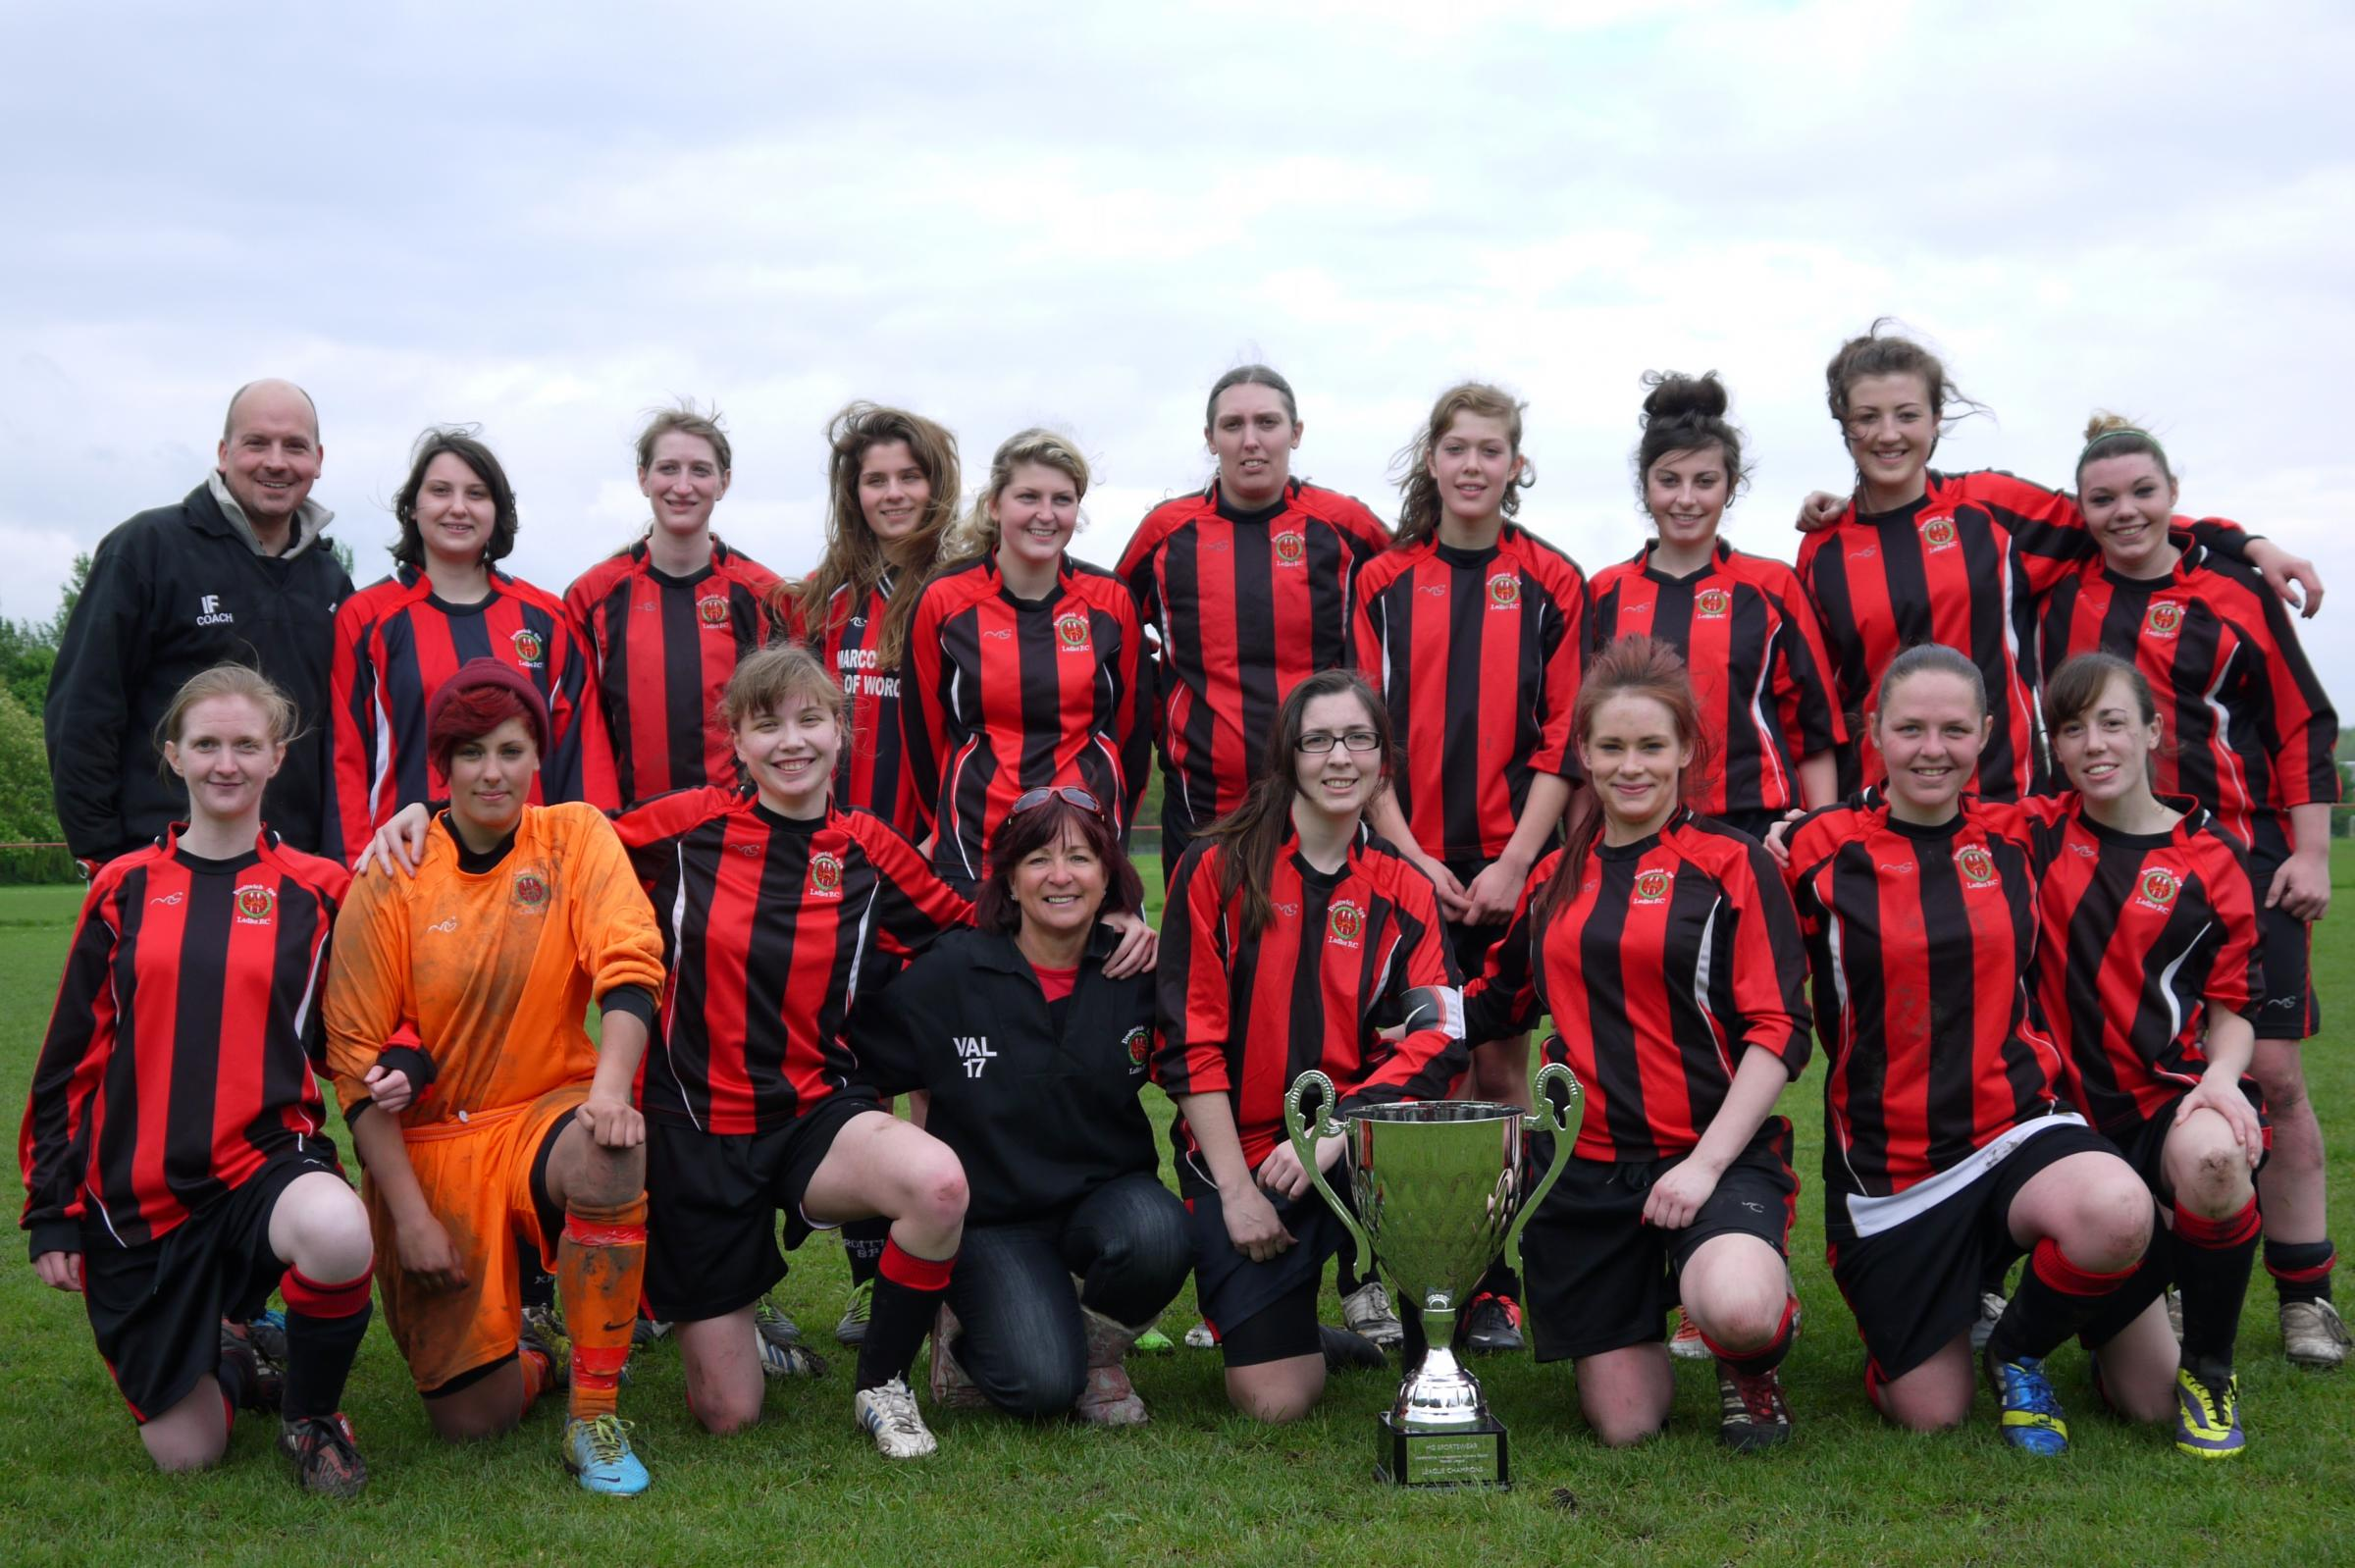 Champions: Droitwich Spa Ladies have won the Worcestershire Women's County League and earned promotion.